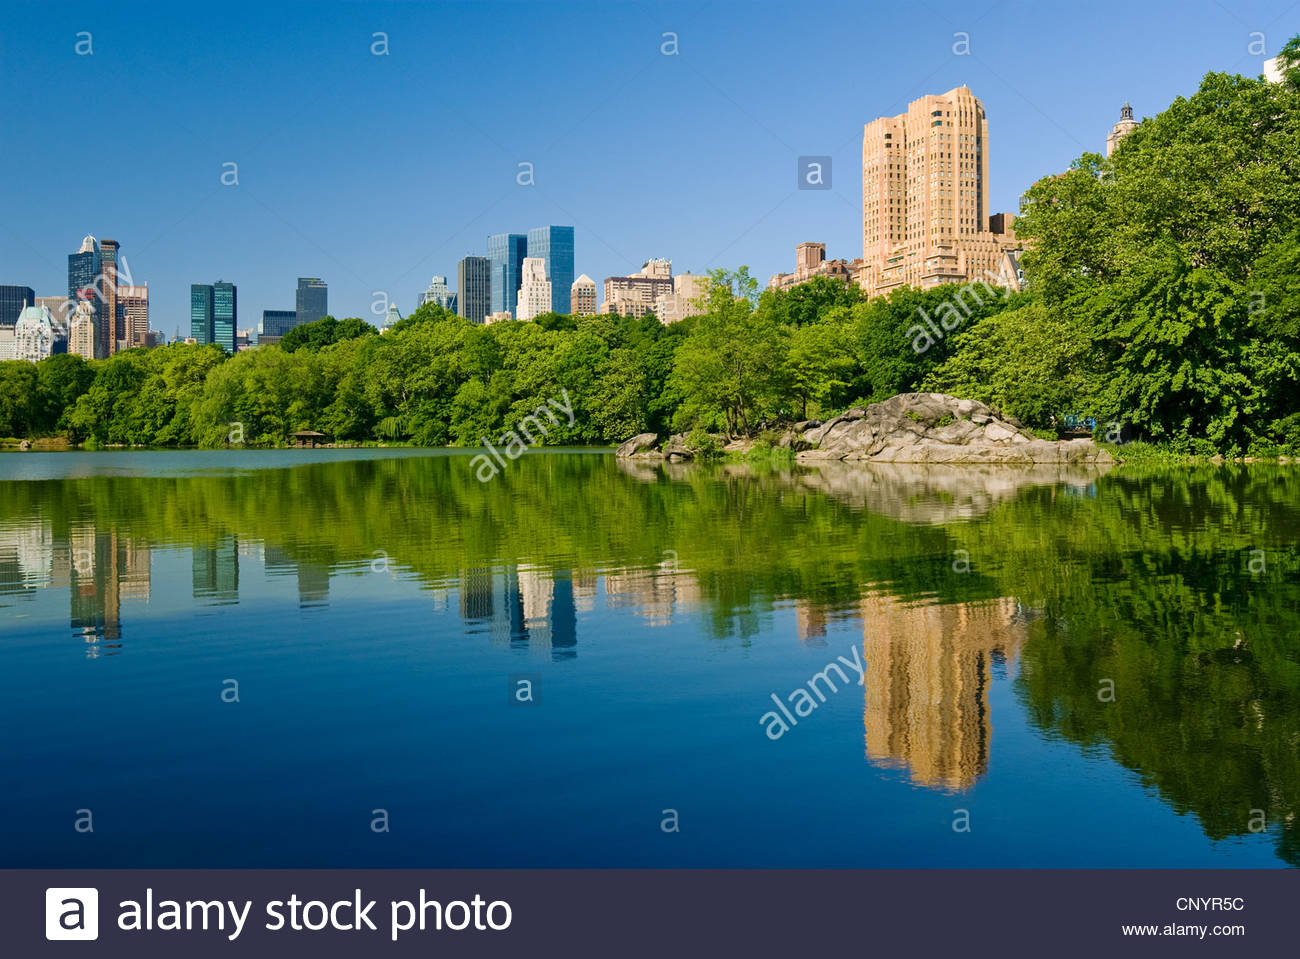 Central Park The Lake Midtown Manhattan Skyline Central Park West - Stock Image